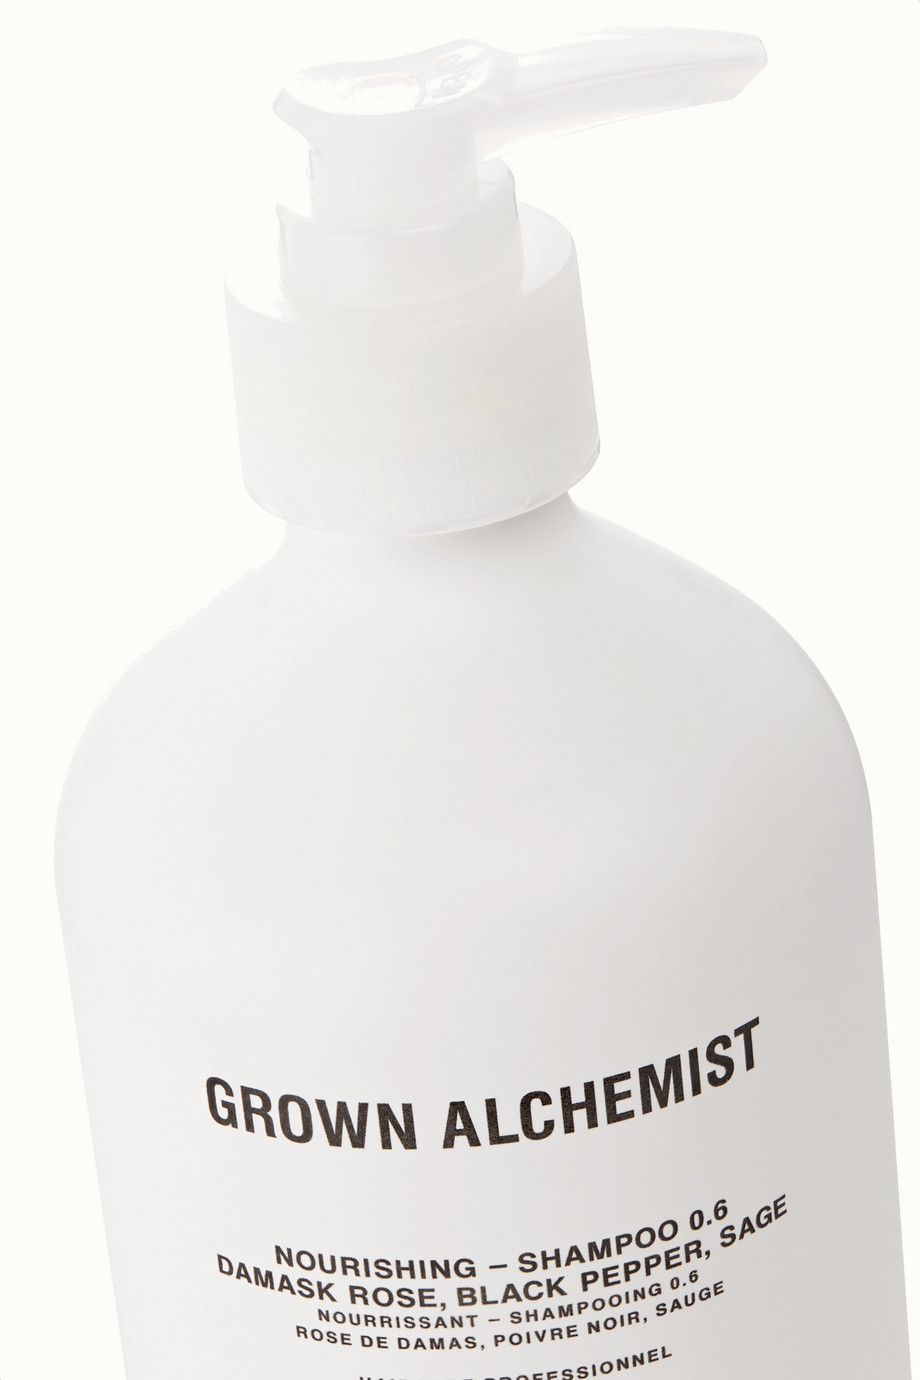 GROWN ALCHEMIST Nourishing - Shampoo 0.6, 500ml